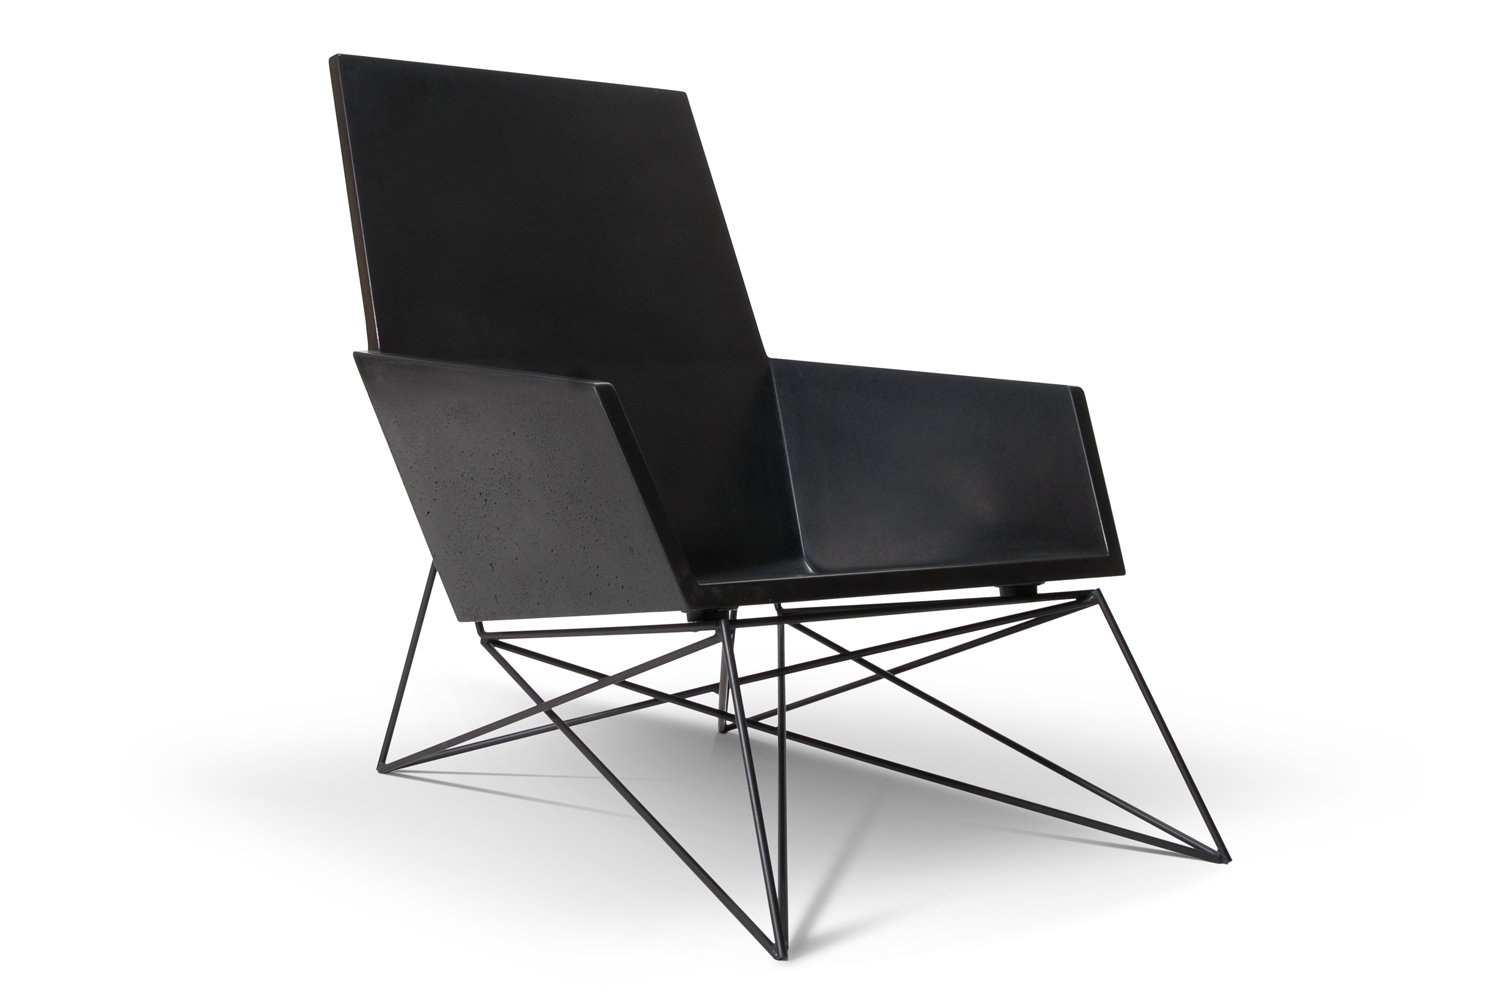 Hard Goods Concrete and Steel Modern Muskoka Outdoor Chair Carbon Edition